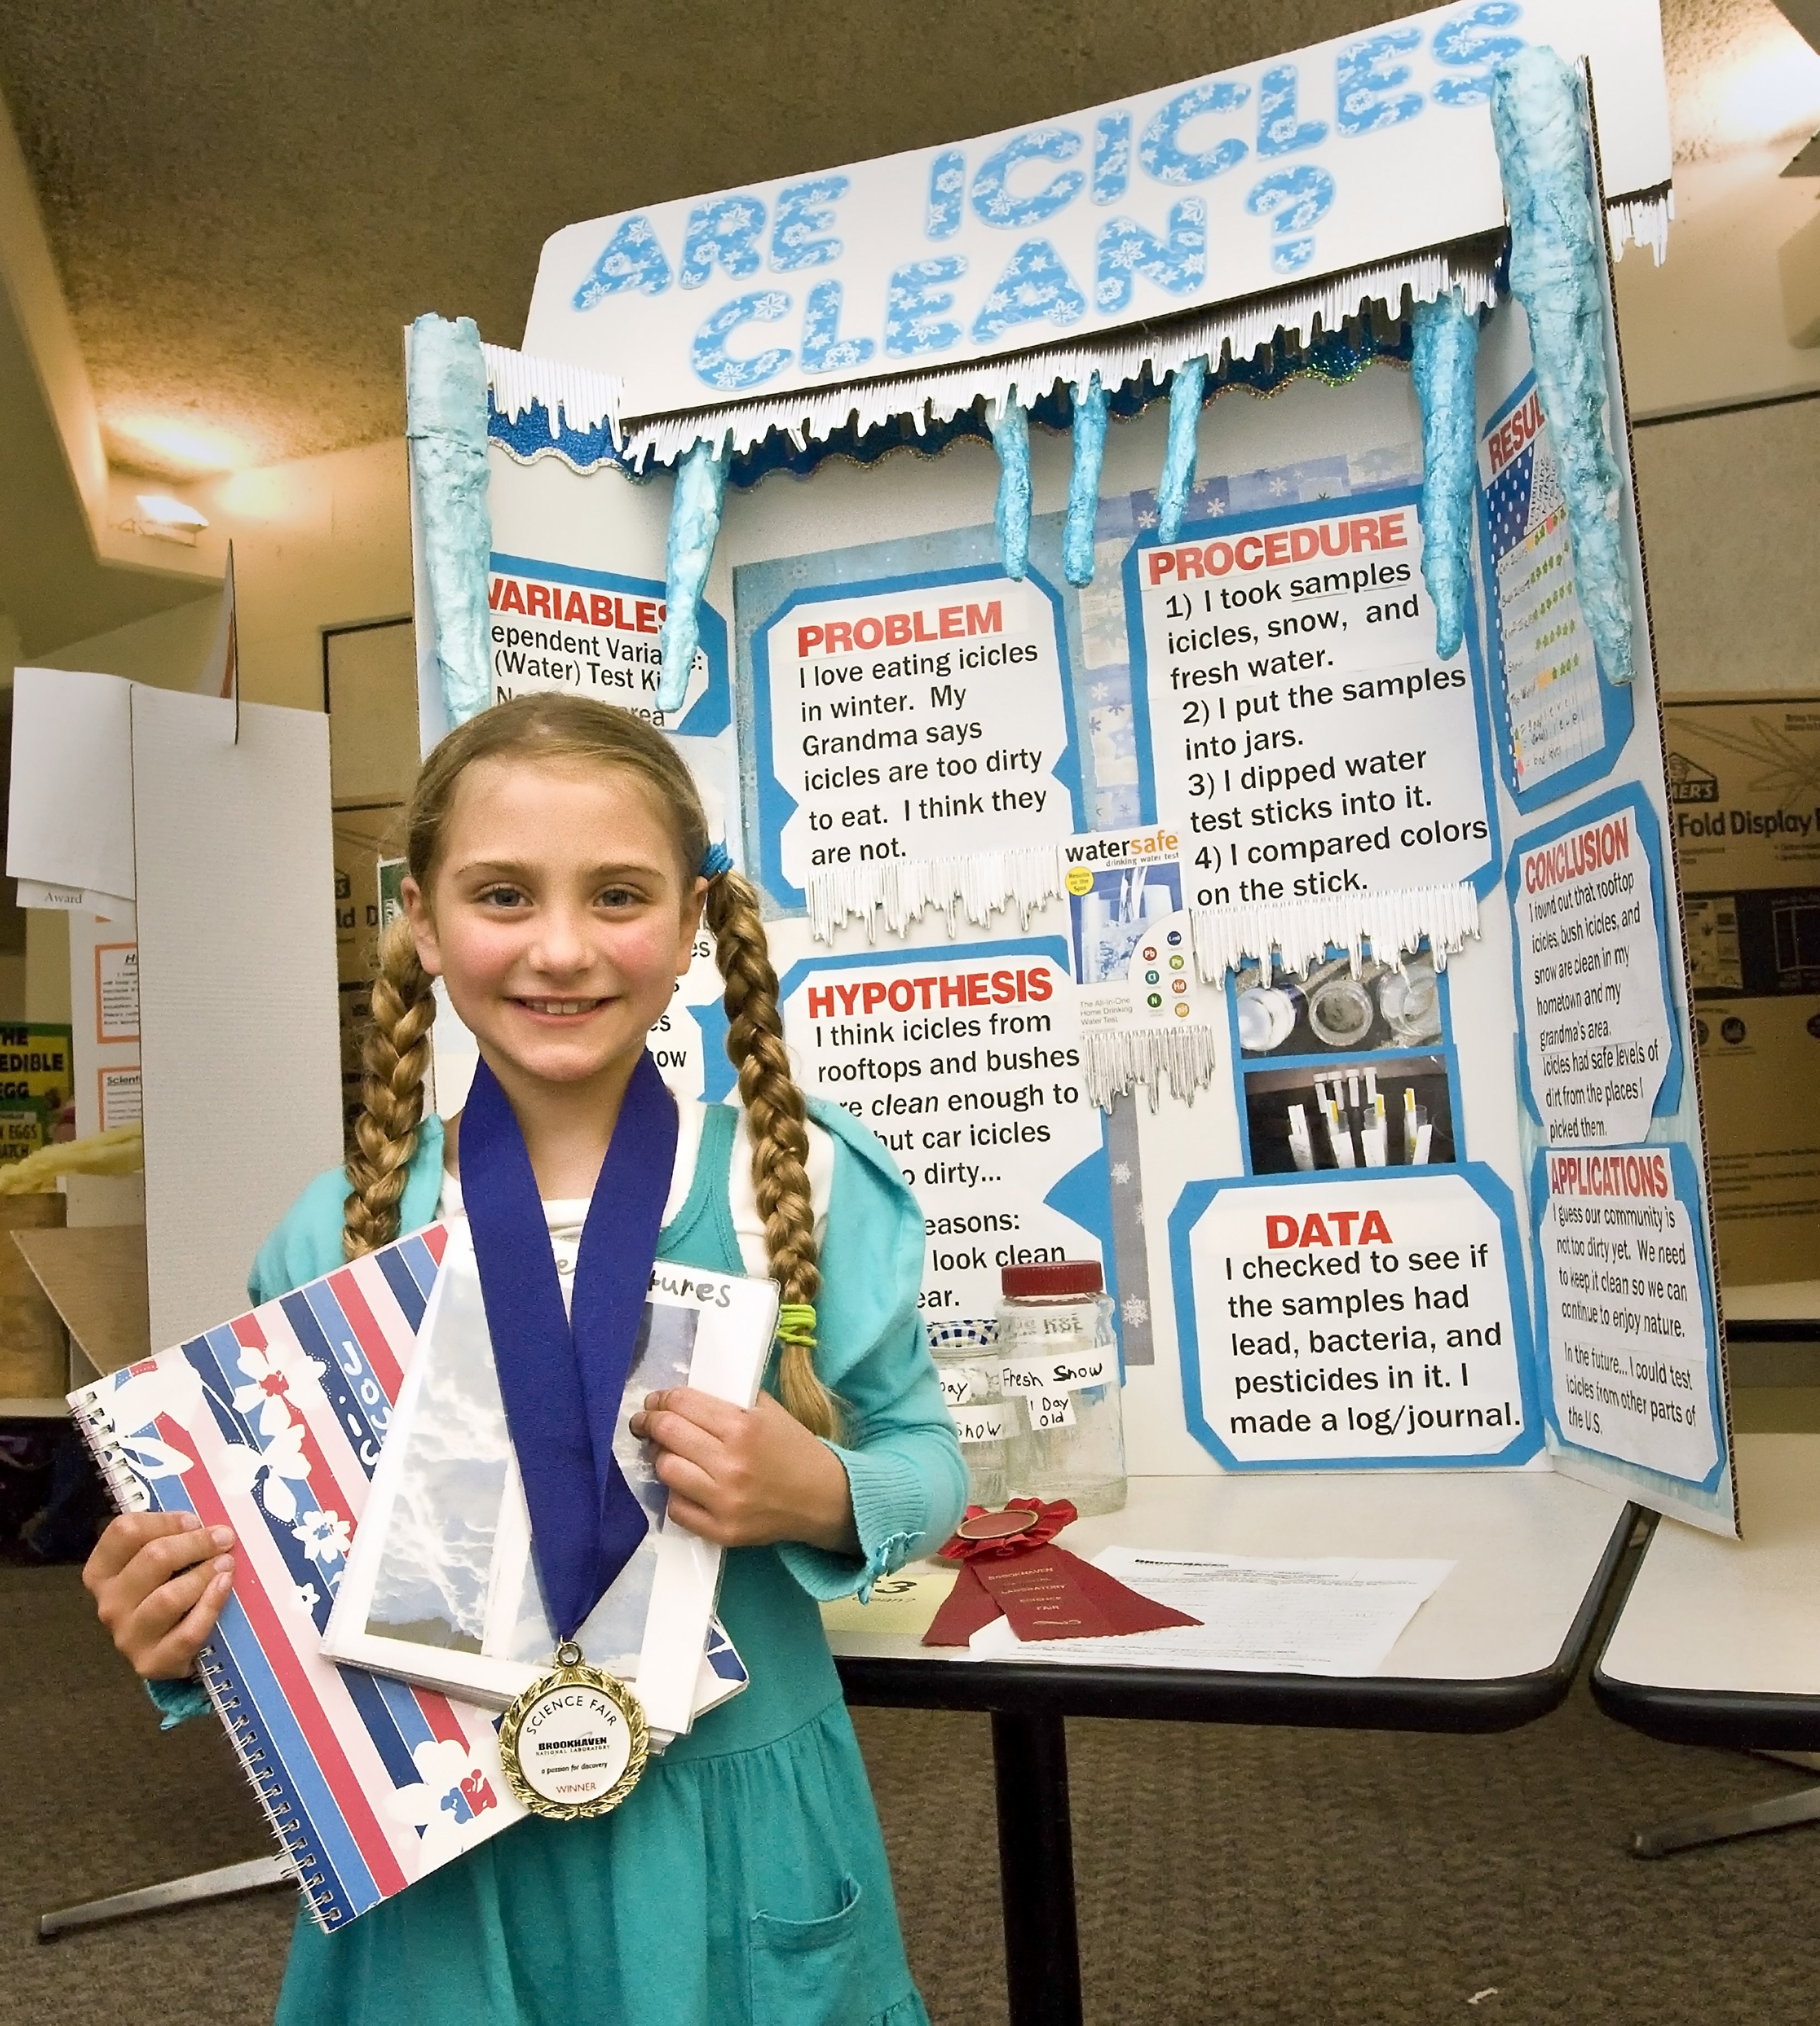 10 Best Science Project Ideas 4Th Grade from ant control to wind energy winning projects at brookhaven 63